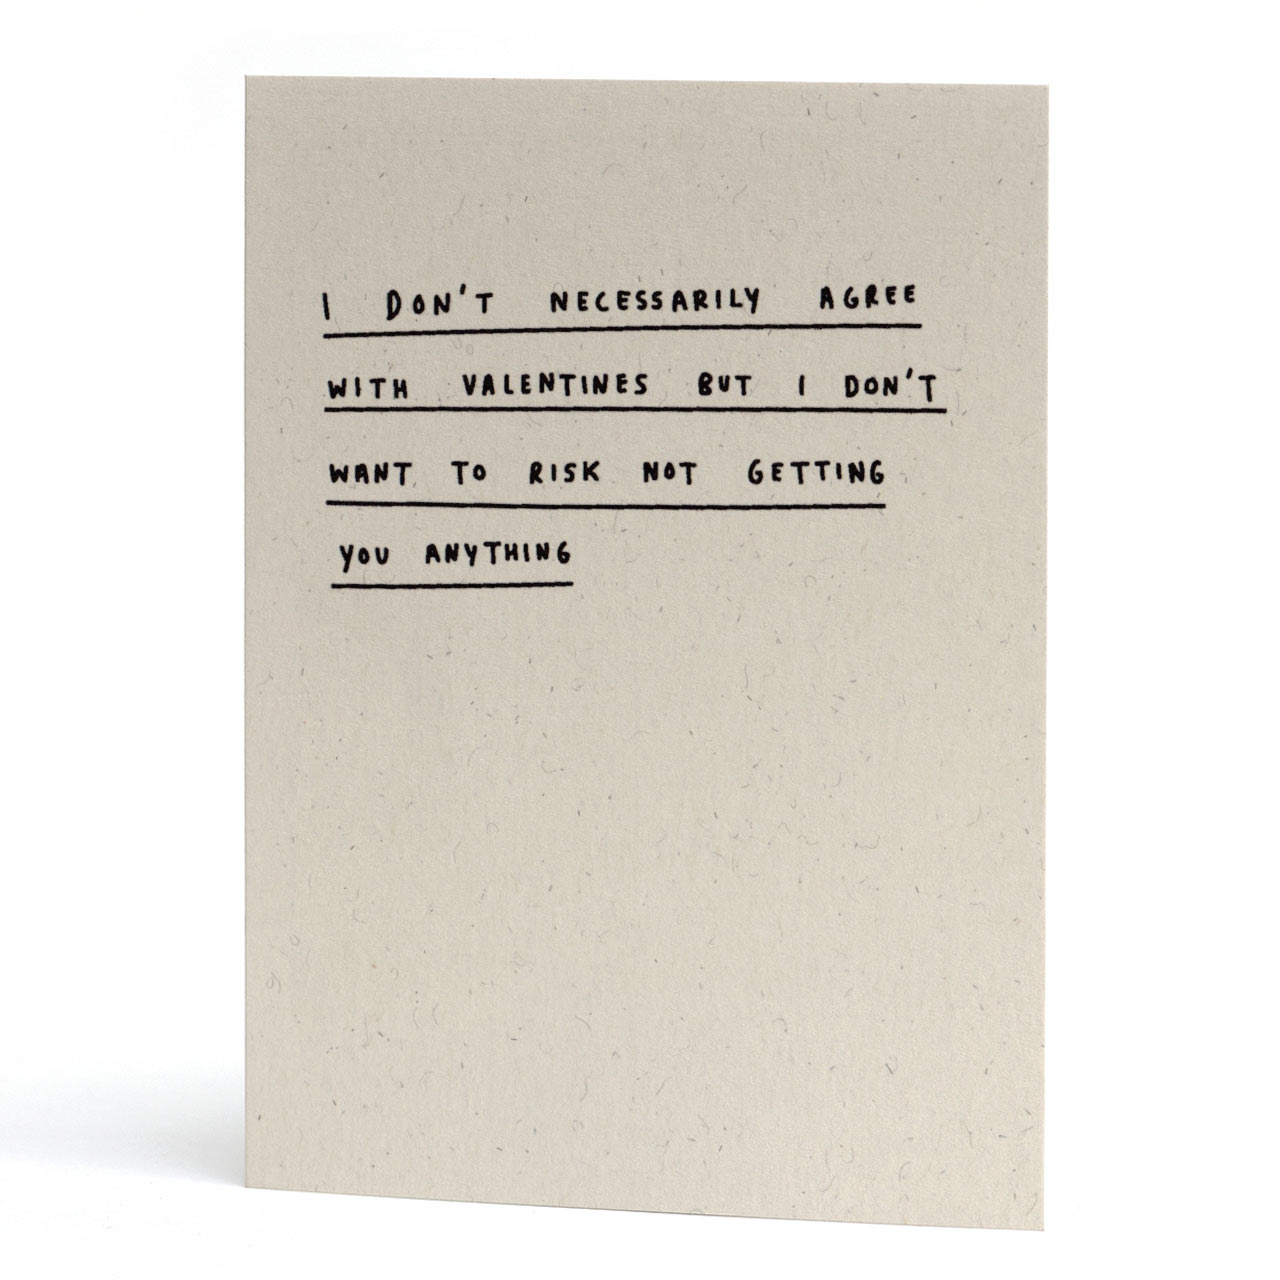 Don't Agree with Valentine's Greeting Card